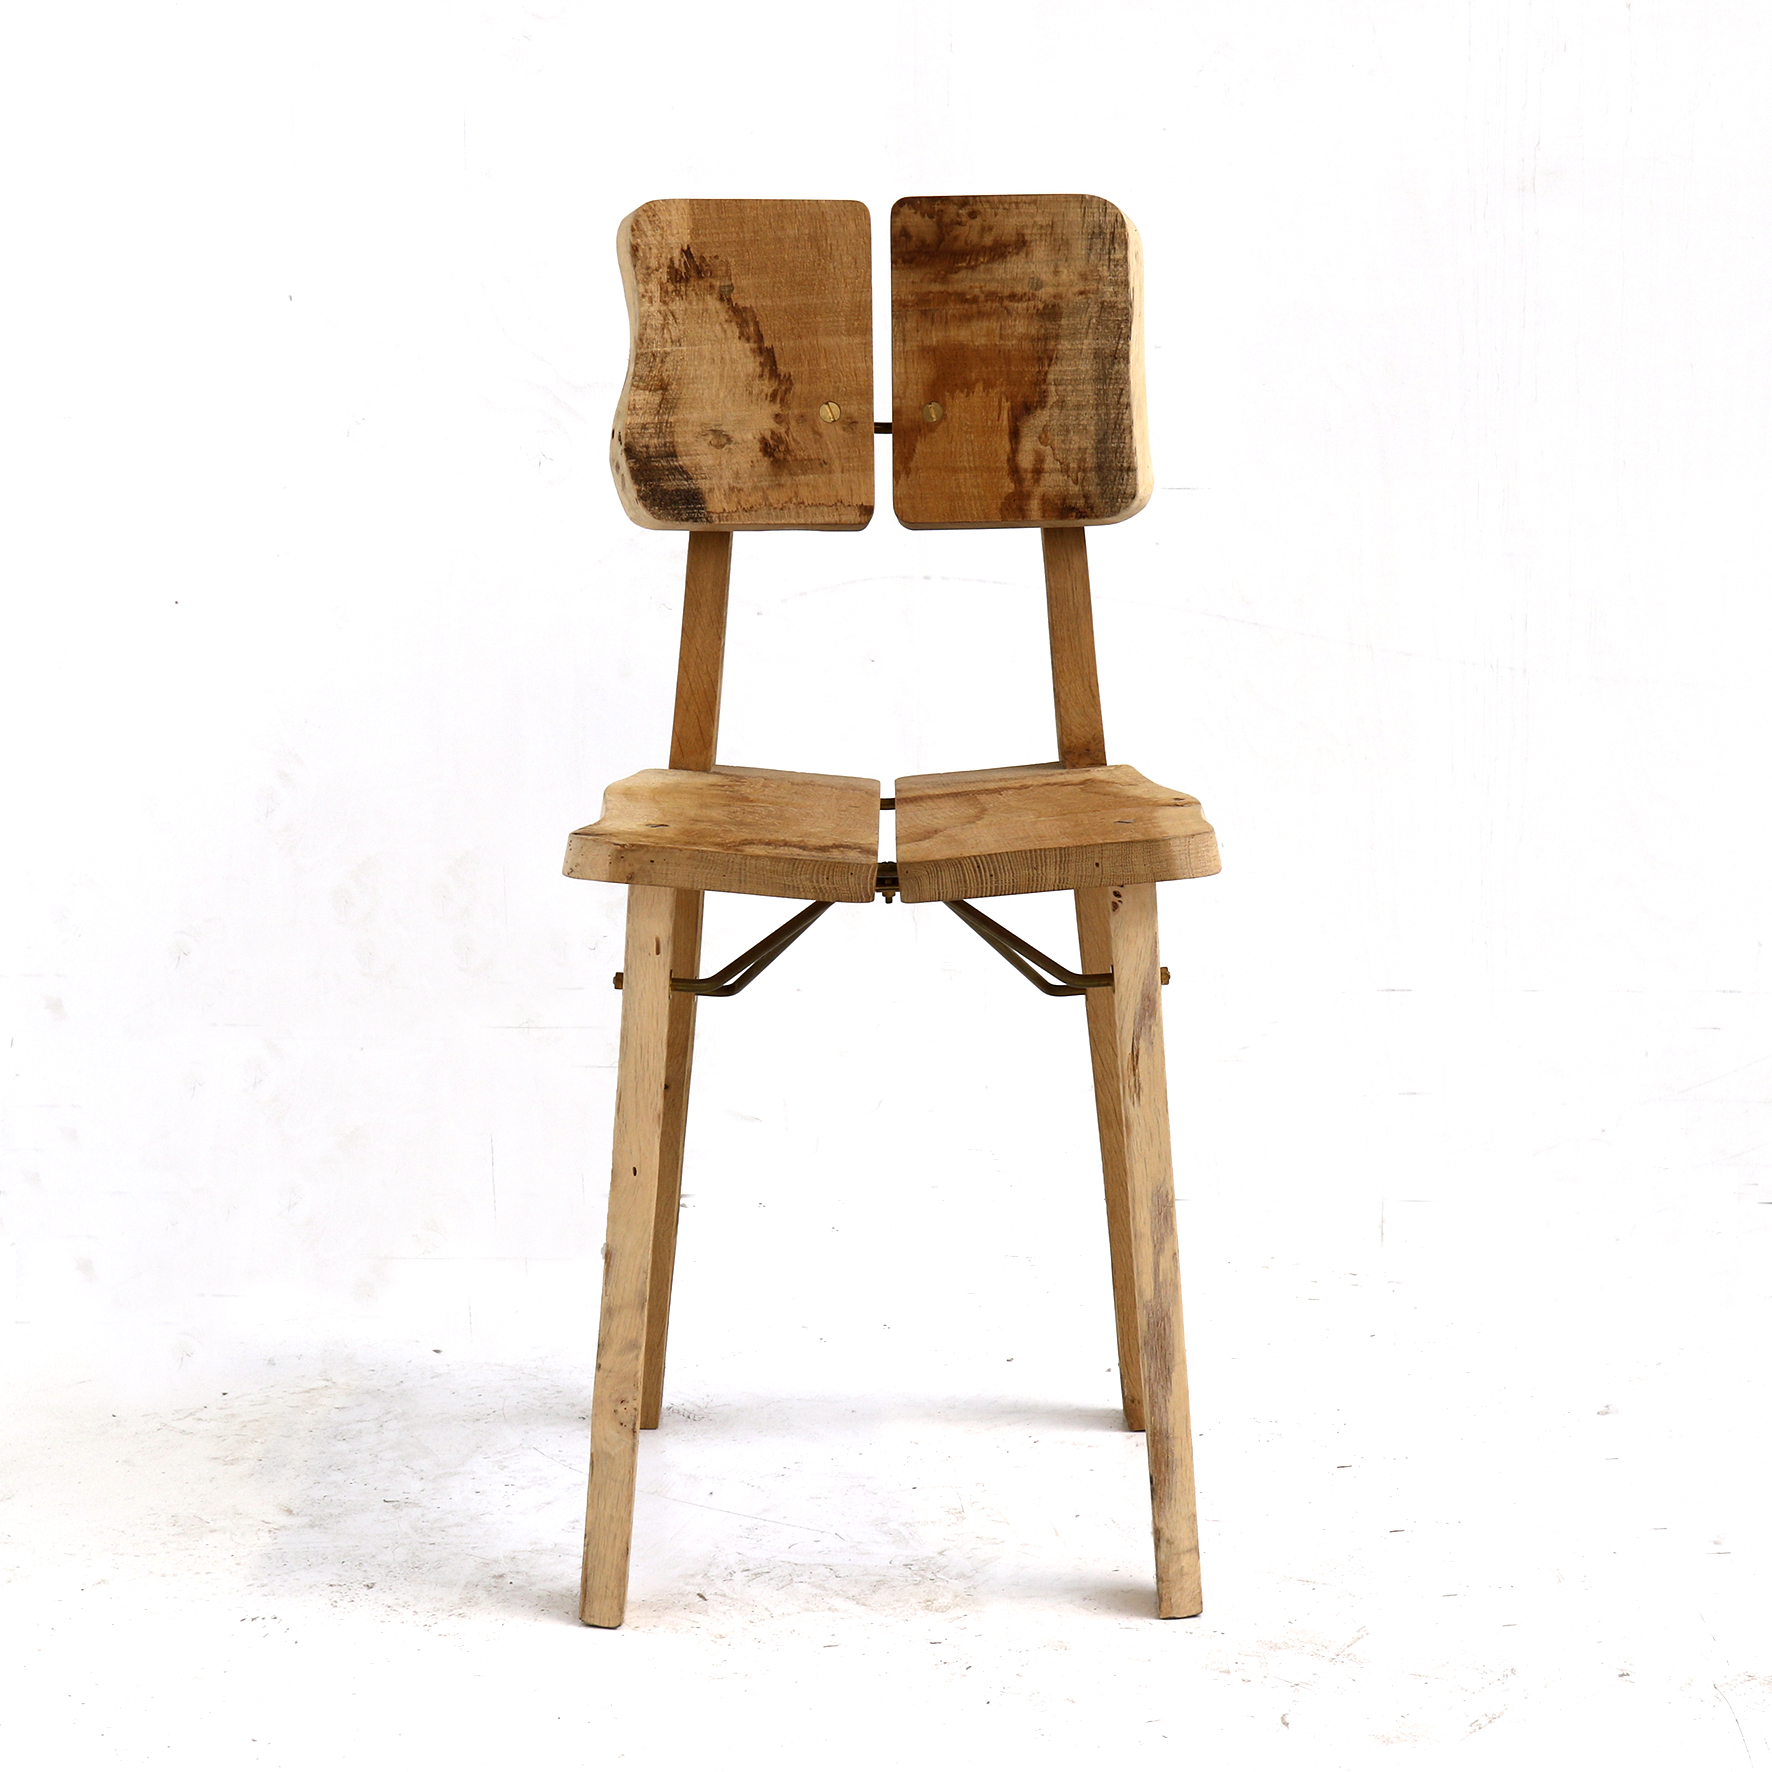 ieuwe-boomstamstoel-1 - new tree trunk chair